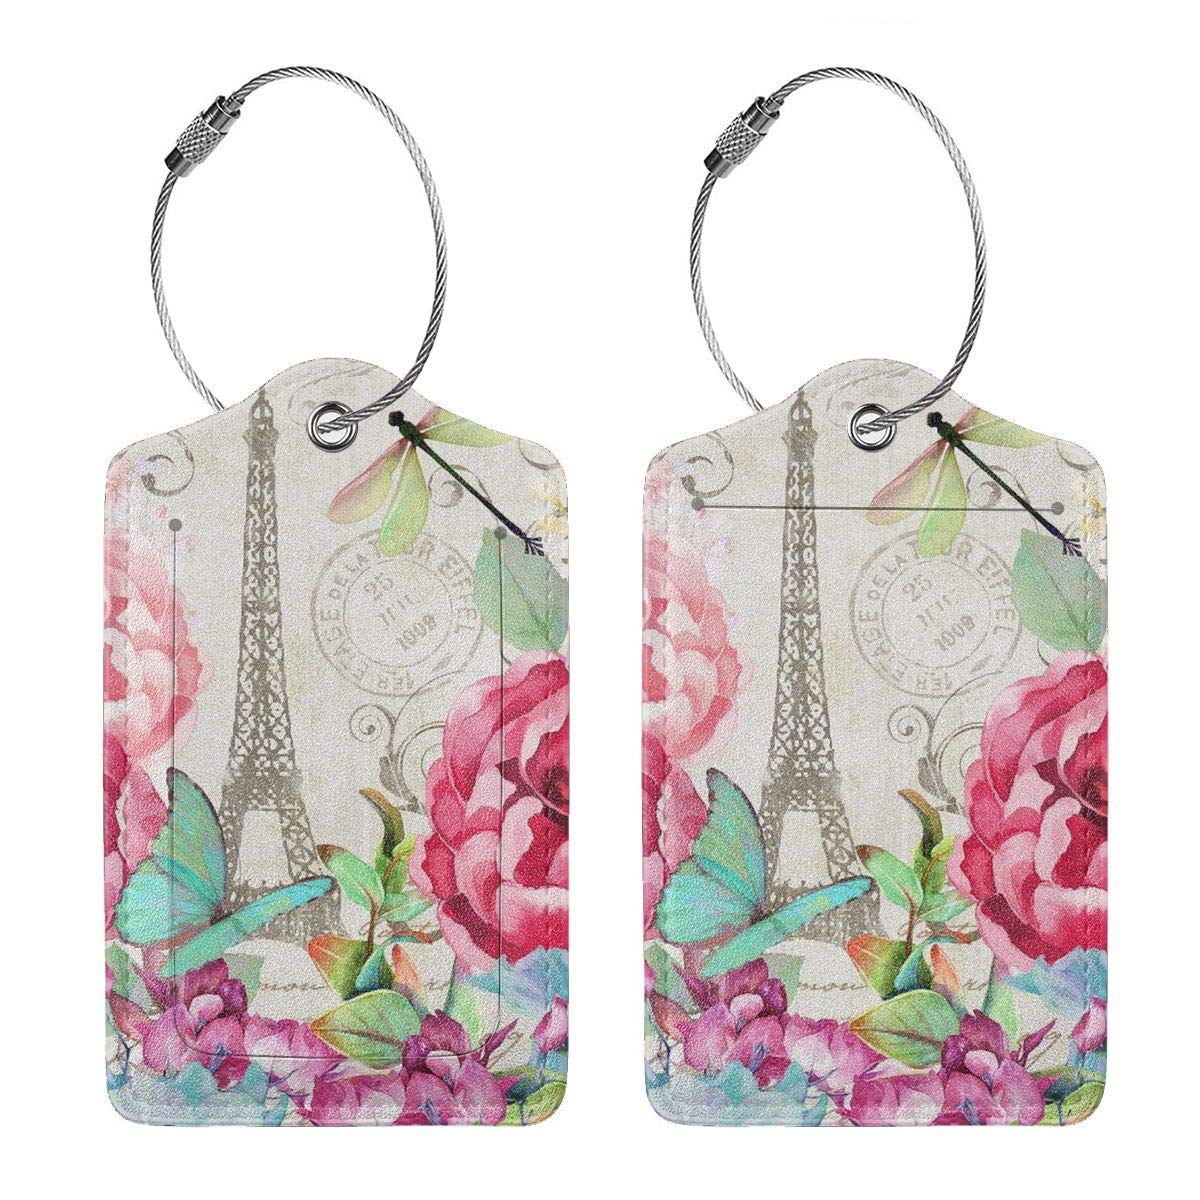 Paris Tower Eiffel And Bicycle Romantic Postcard Reverse Umbrella Double Layer Inverted Umbrellas For Car Rain Outdoor With C-Shaped Handle Personalized